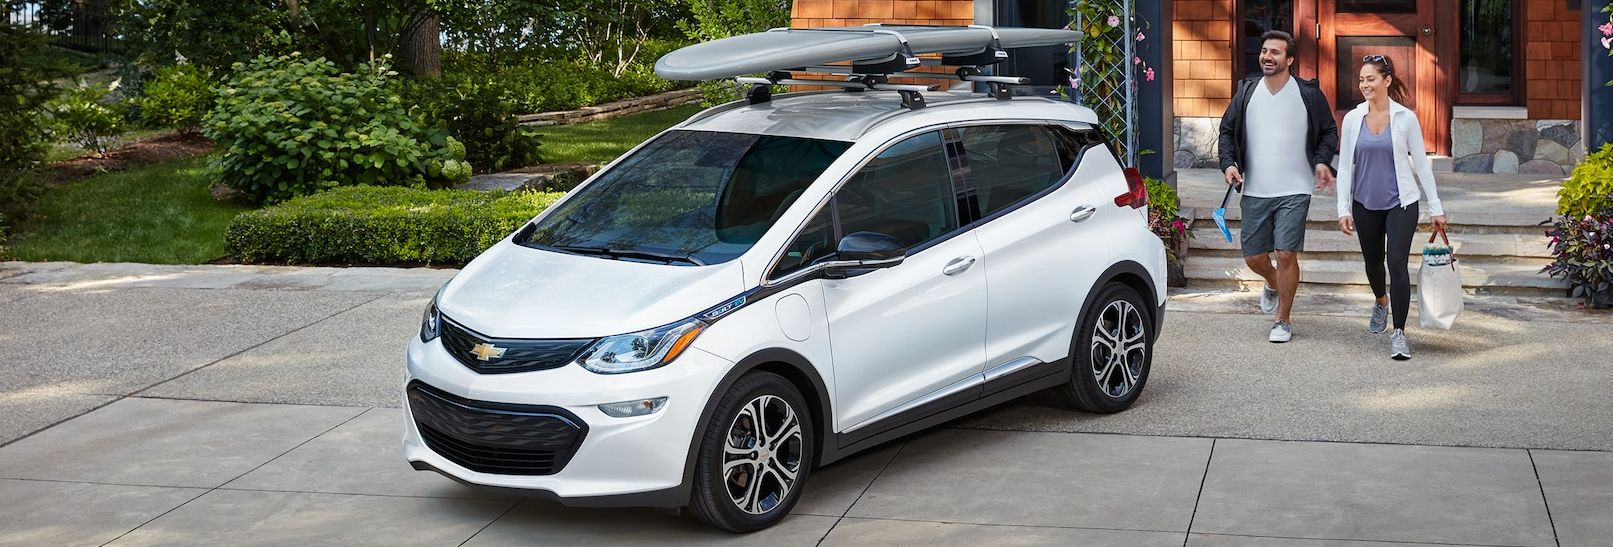 Cost Benefits of the 2019 Chevrolet Bolt EV near Escondido, CA